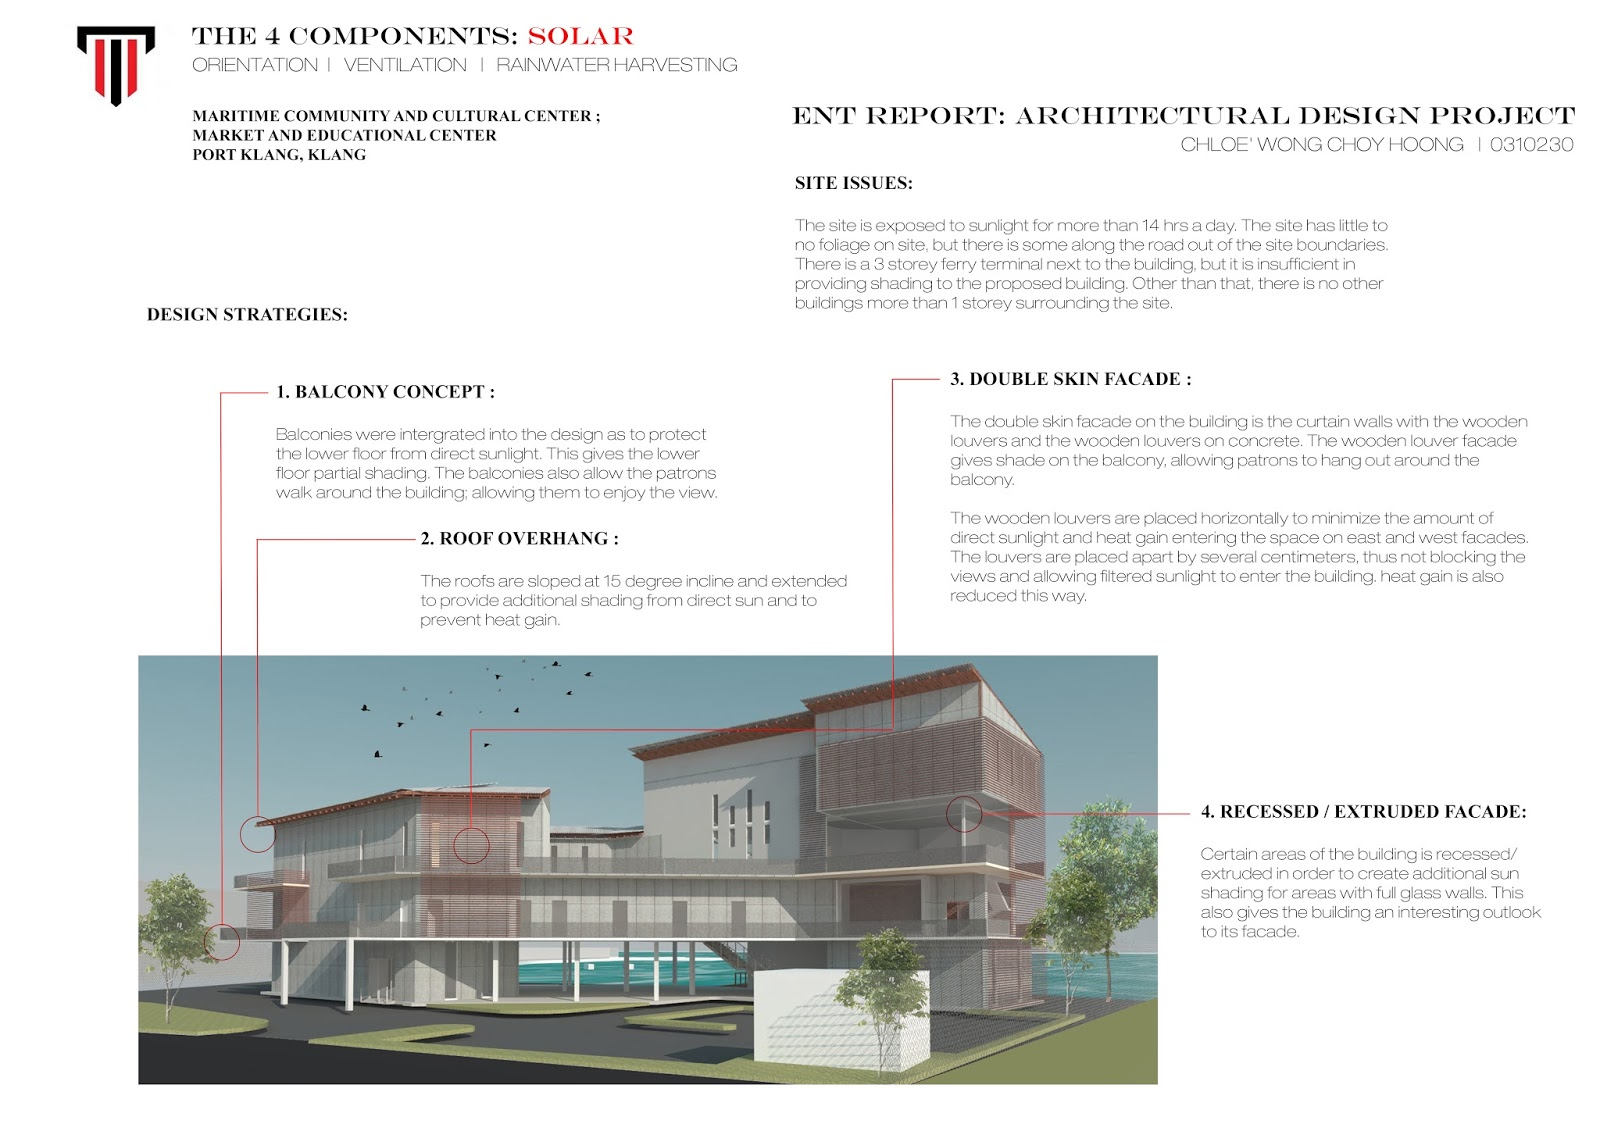 Awesome Produce A Formal Architectural Design Strategy That